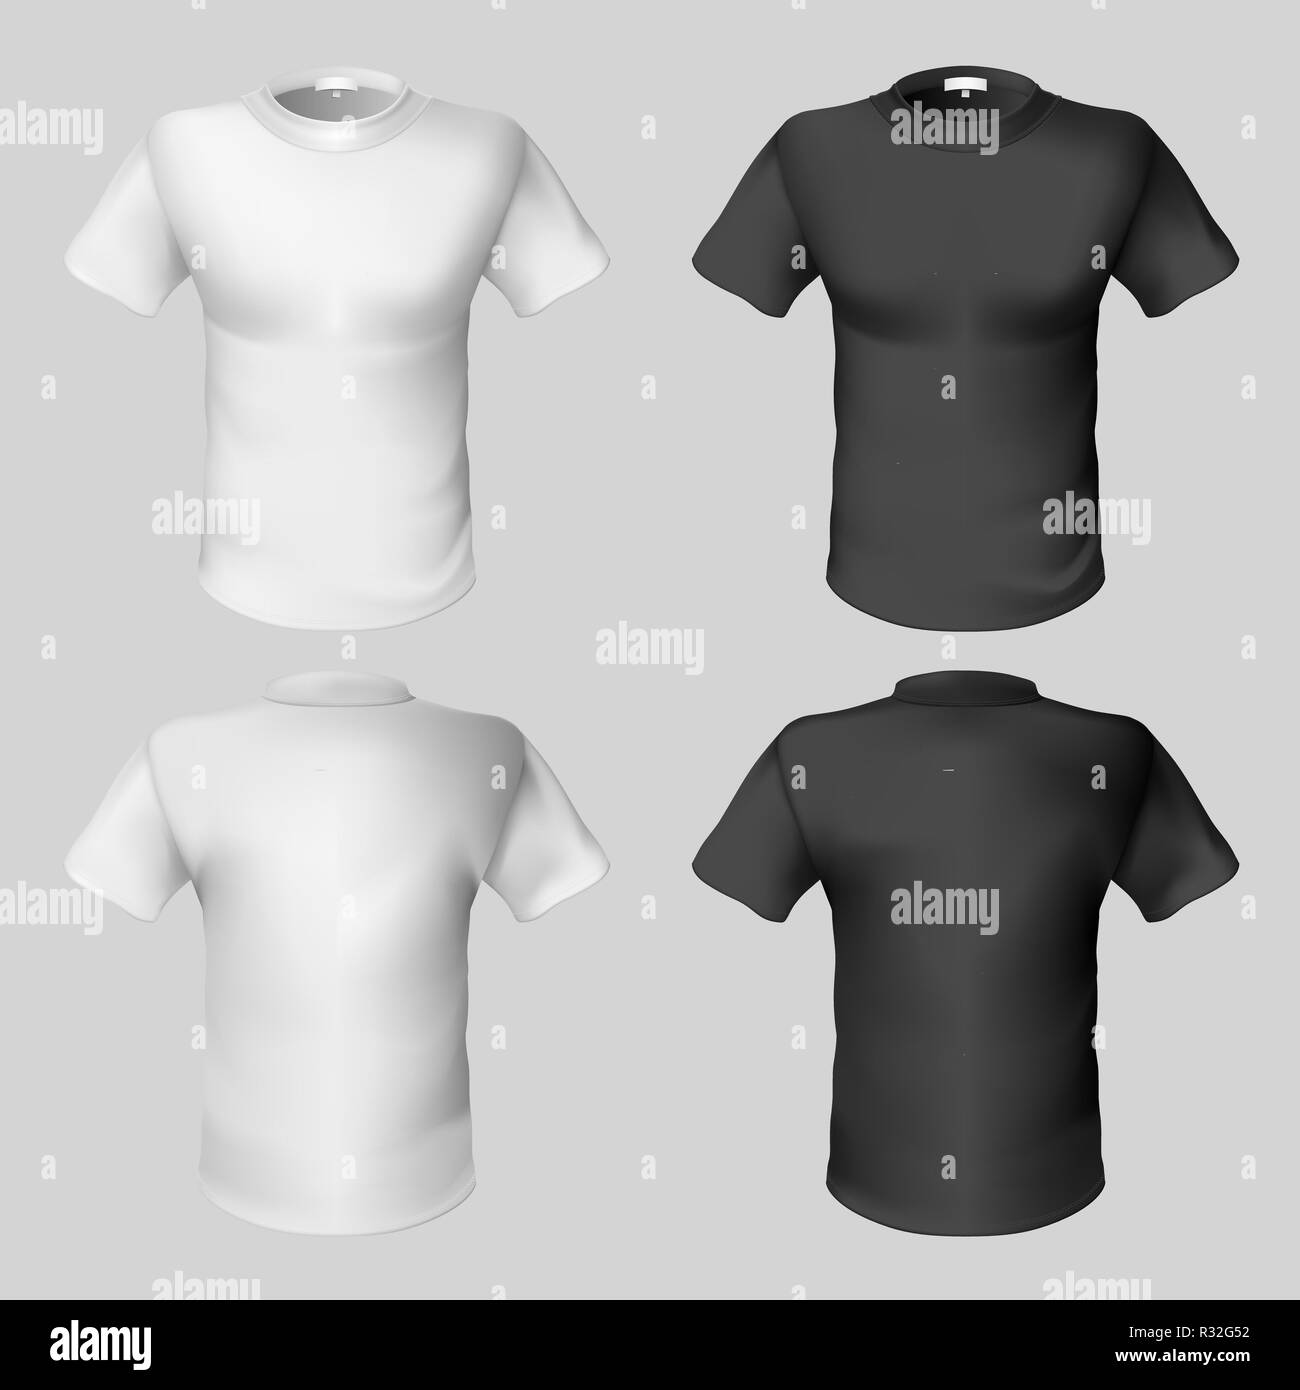 T Shirt Design Template Front And Back Black And White Stock